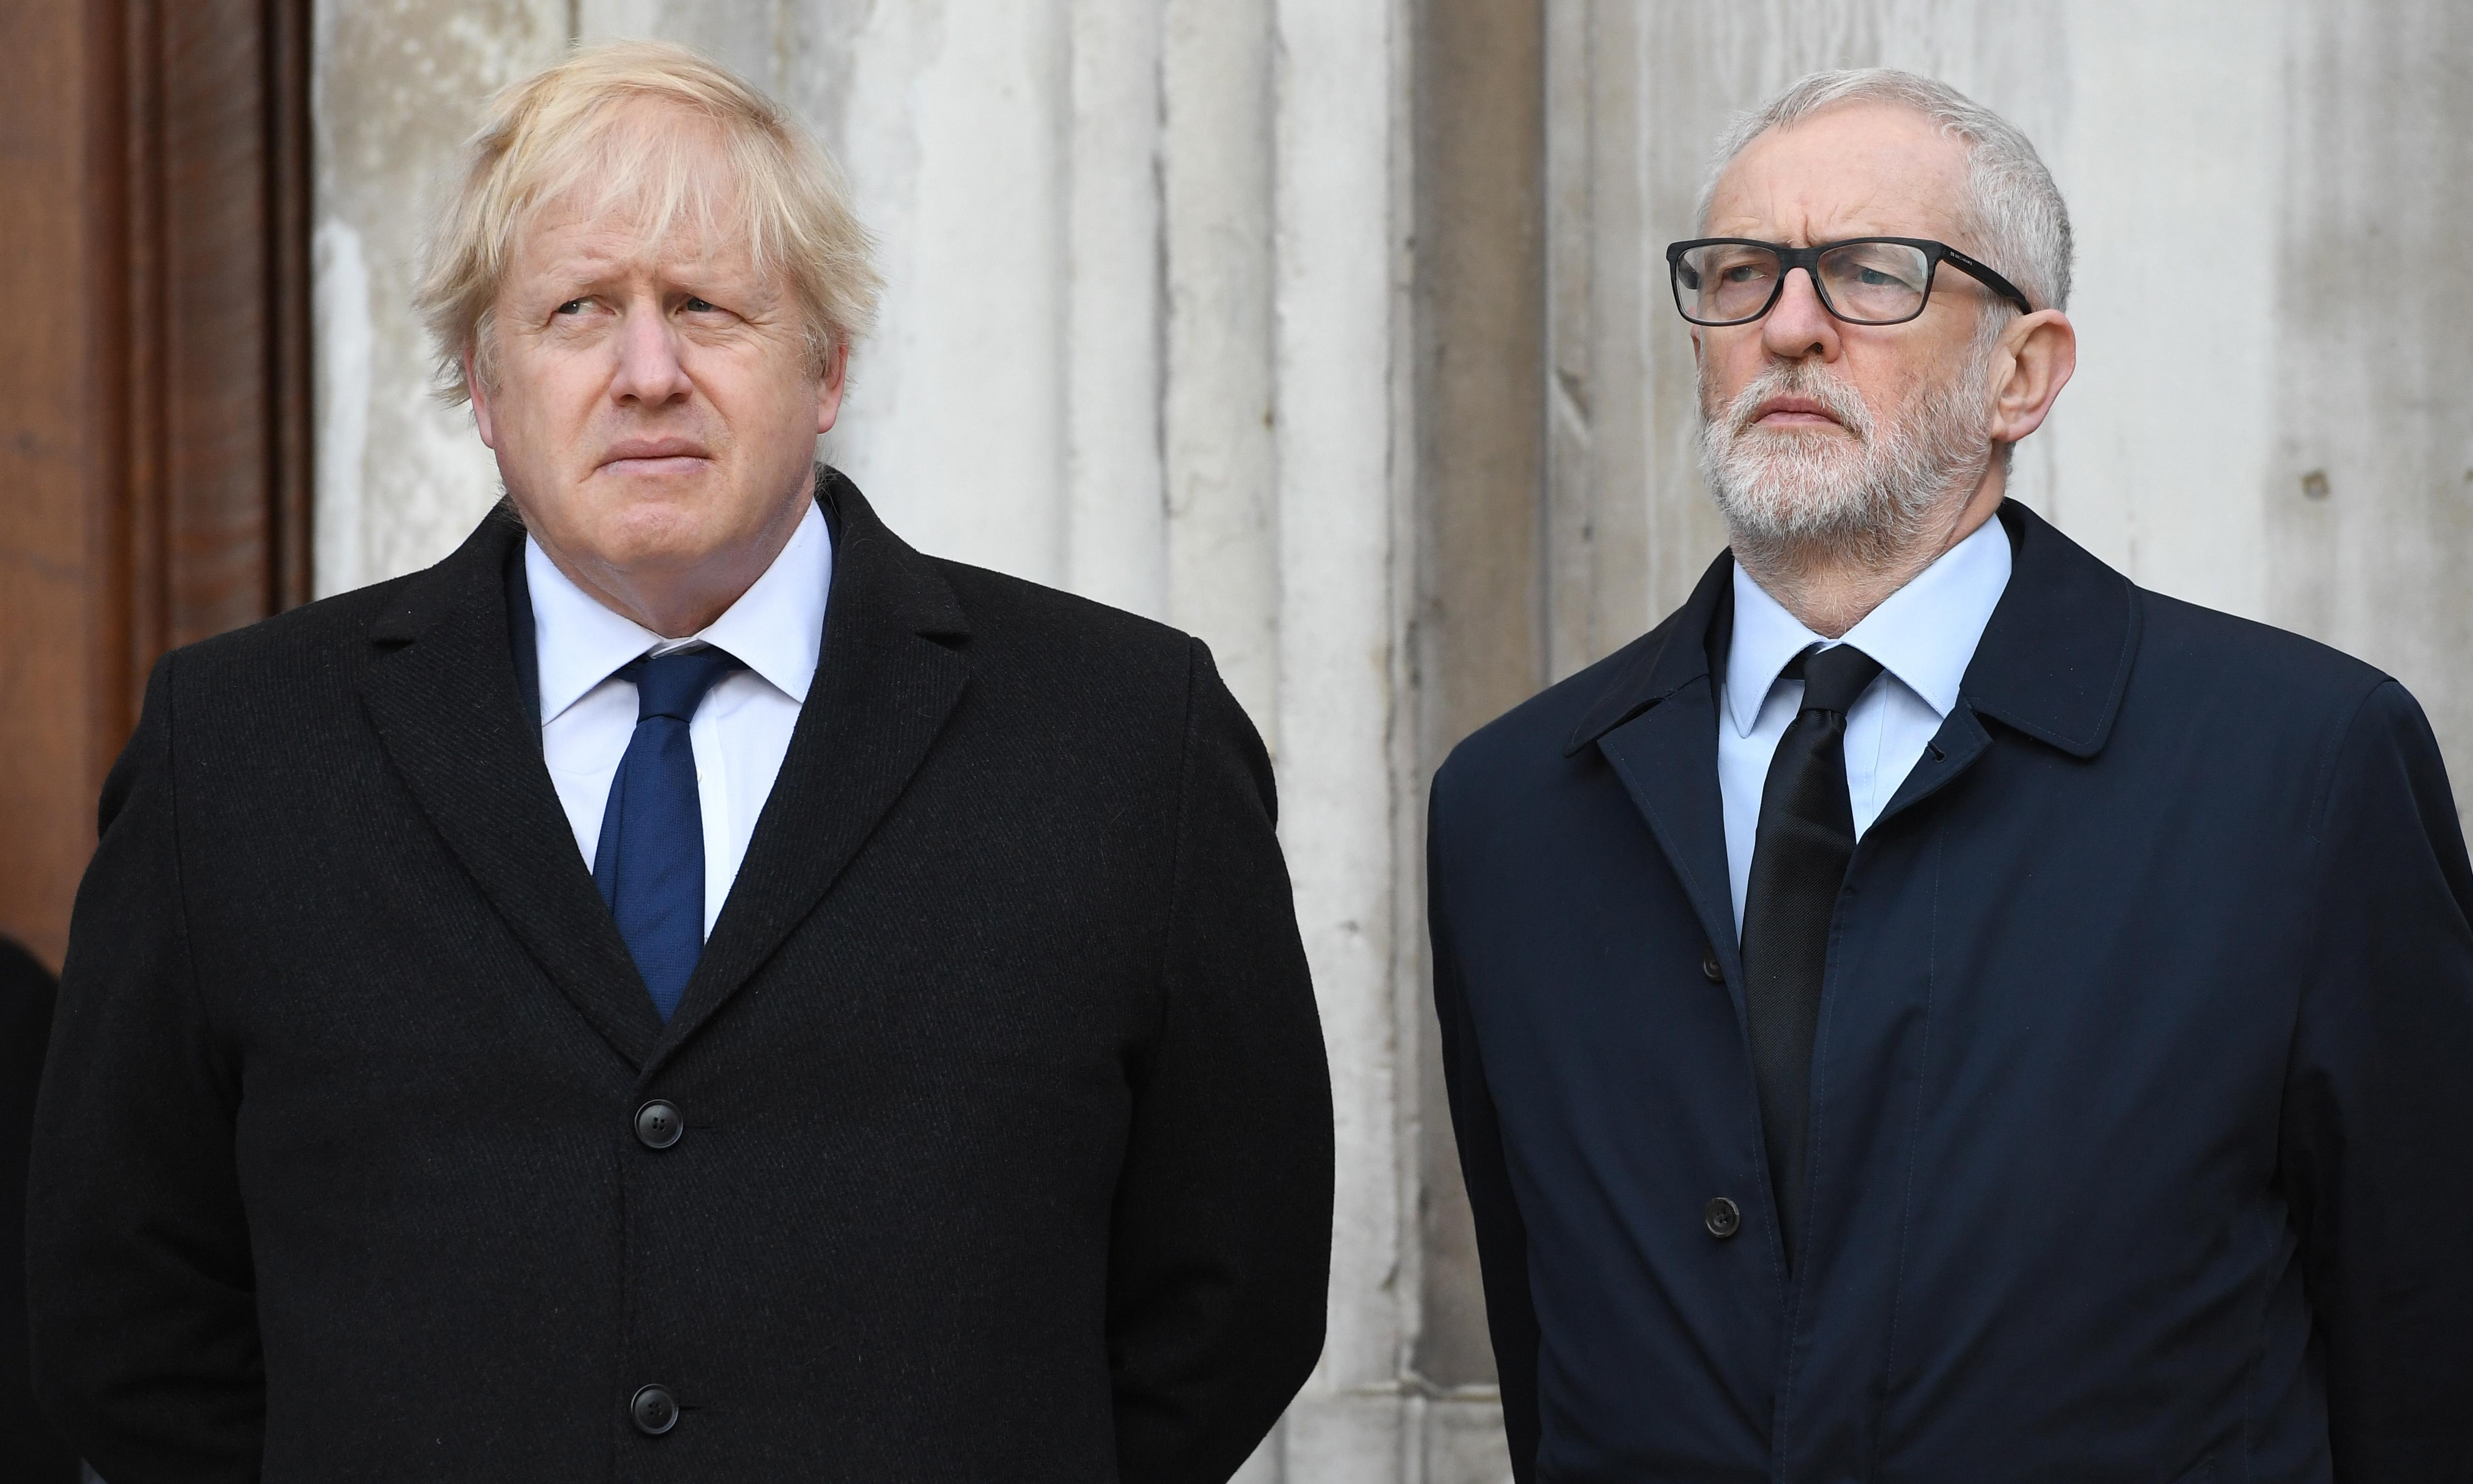 TV tonight: Boris Johnson and Jeremy Corbyn go head to head